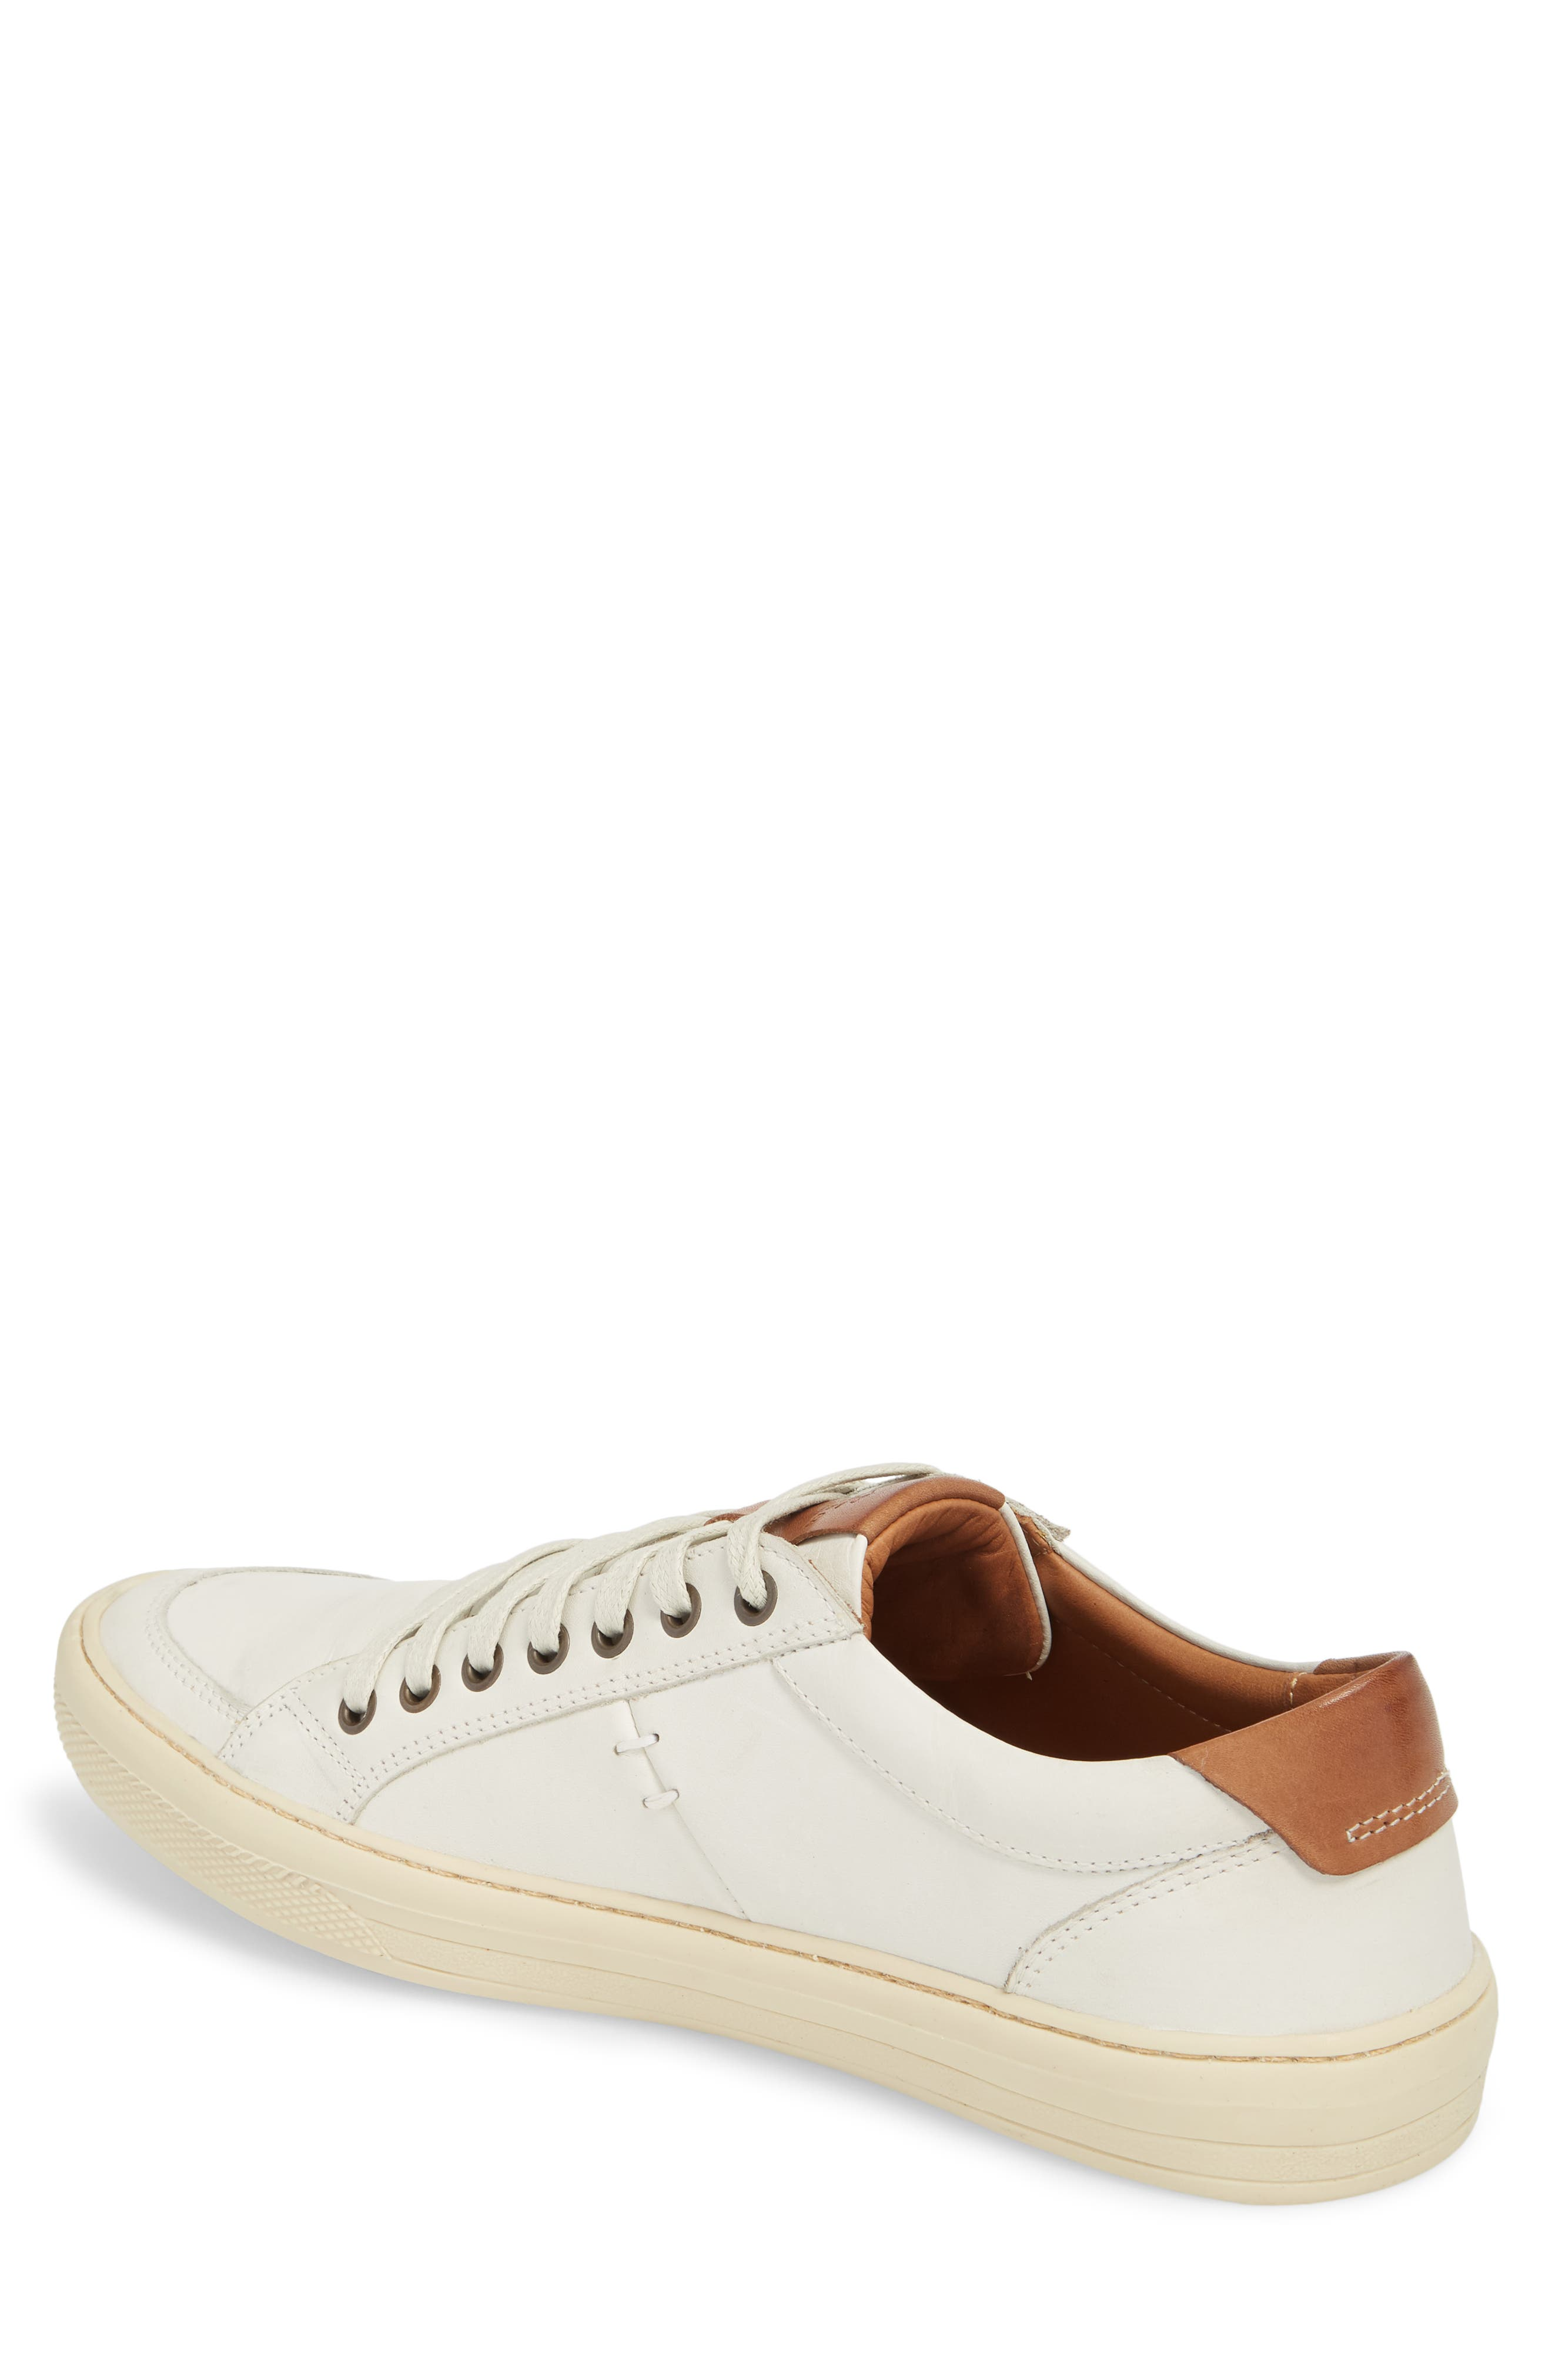 Bilac Low Top Sneaker,                             Alternate thumbnail 2, color,                             Touch Ice/ Bronze Leather